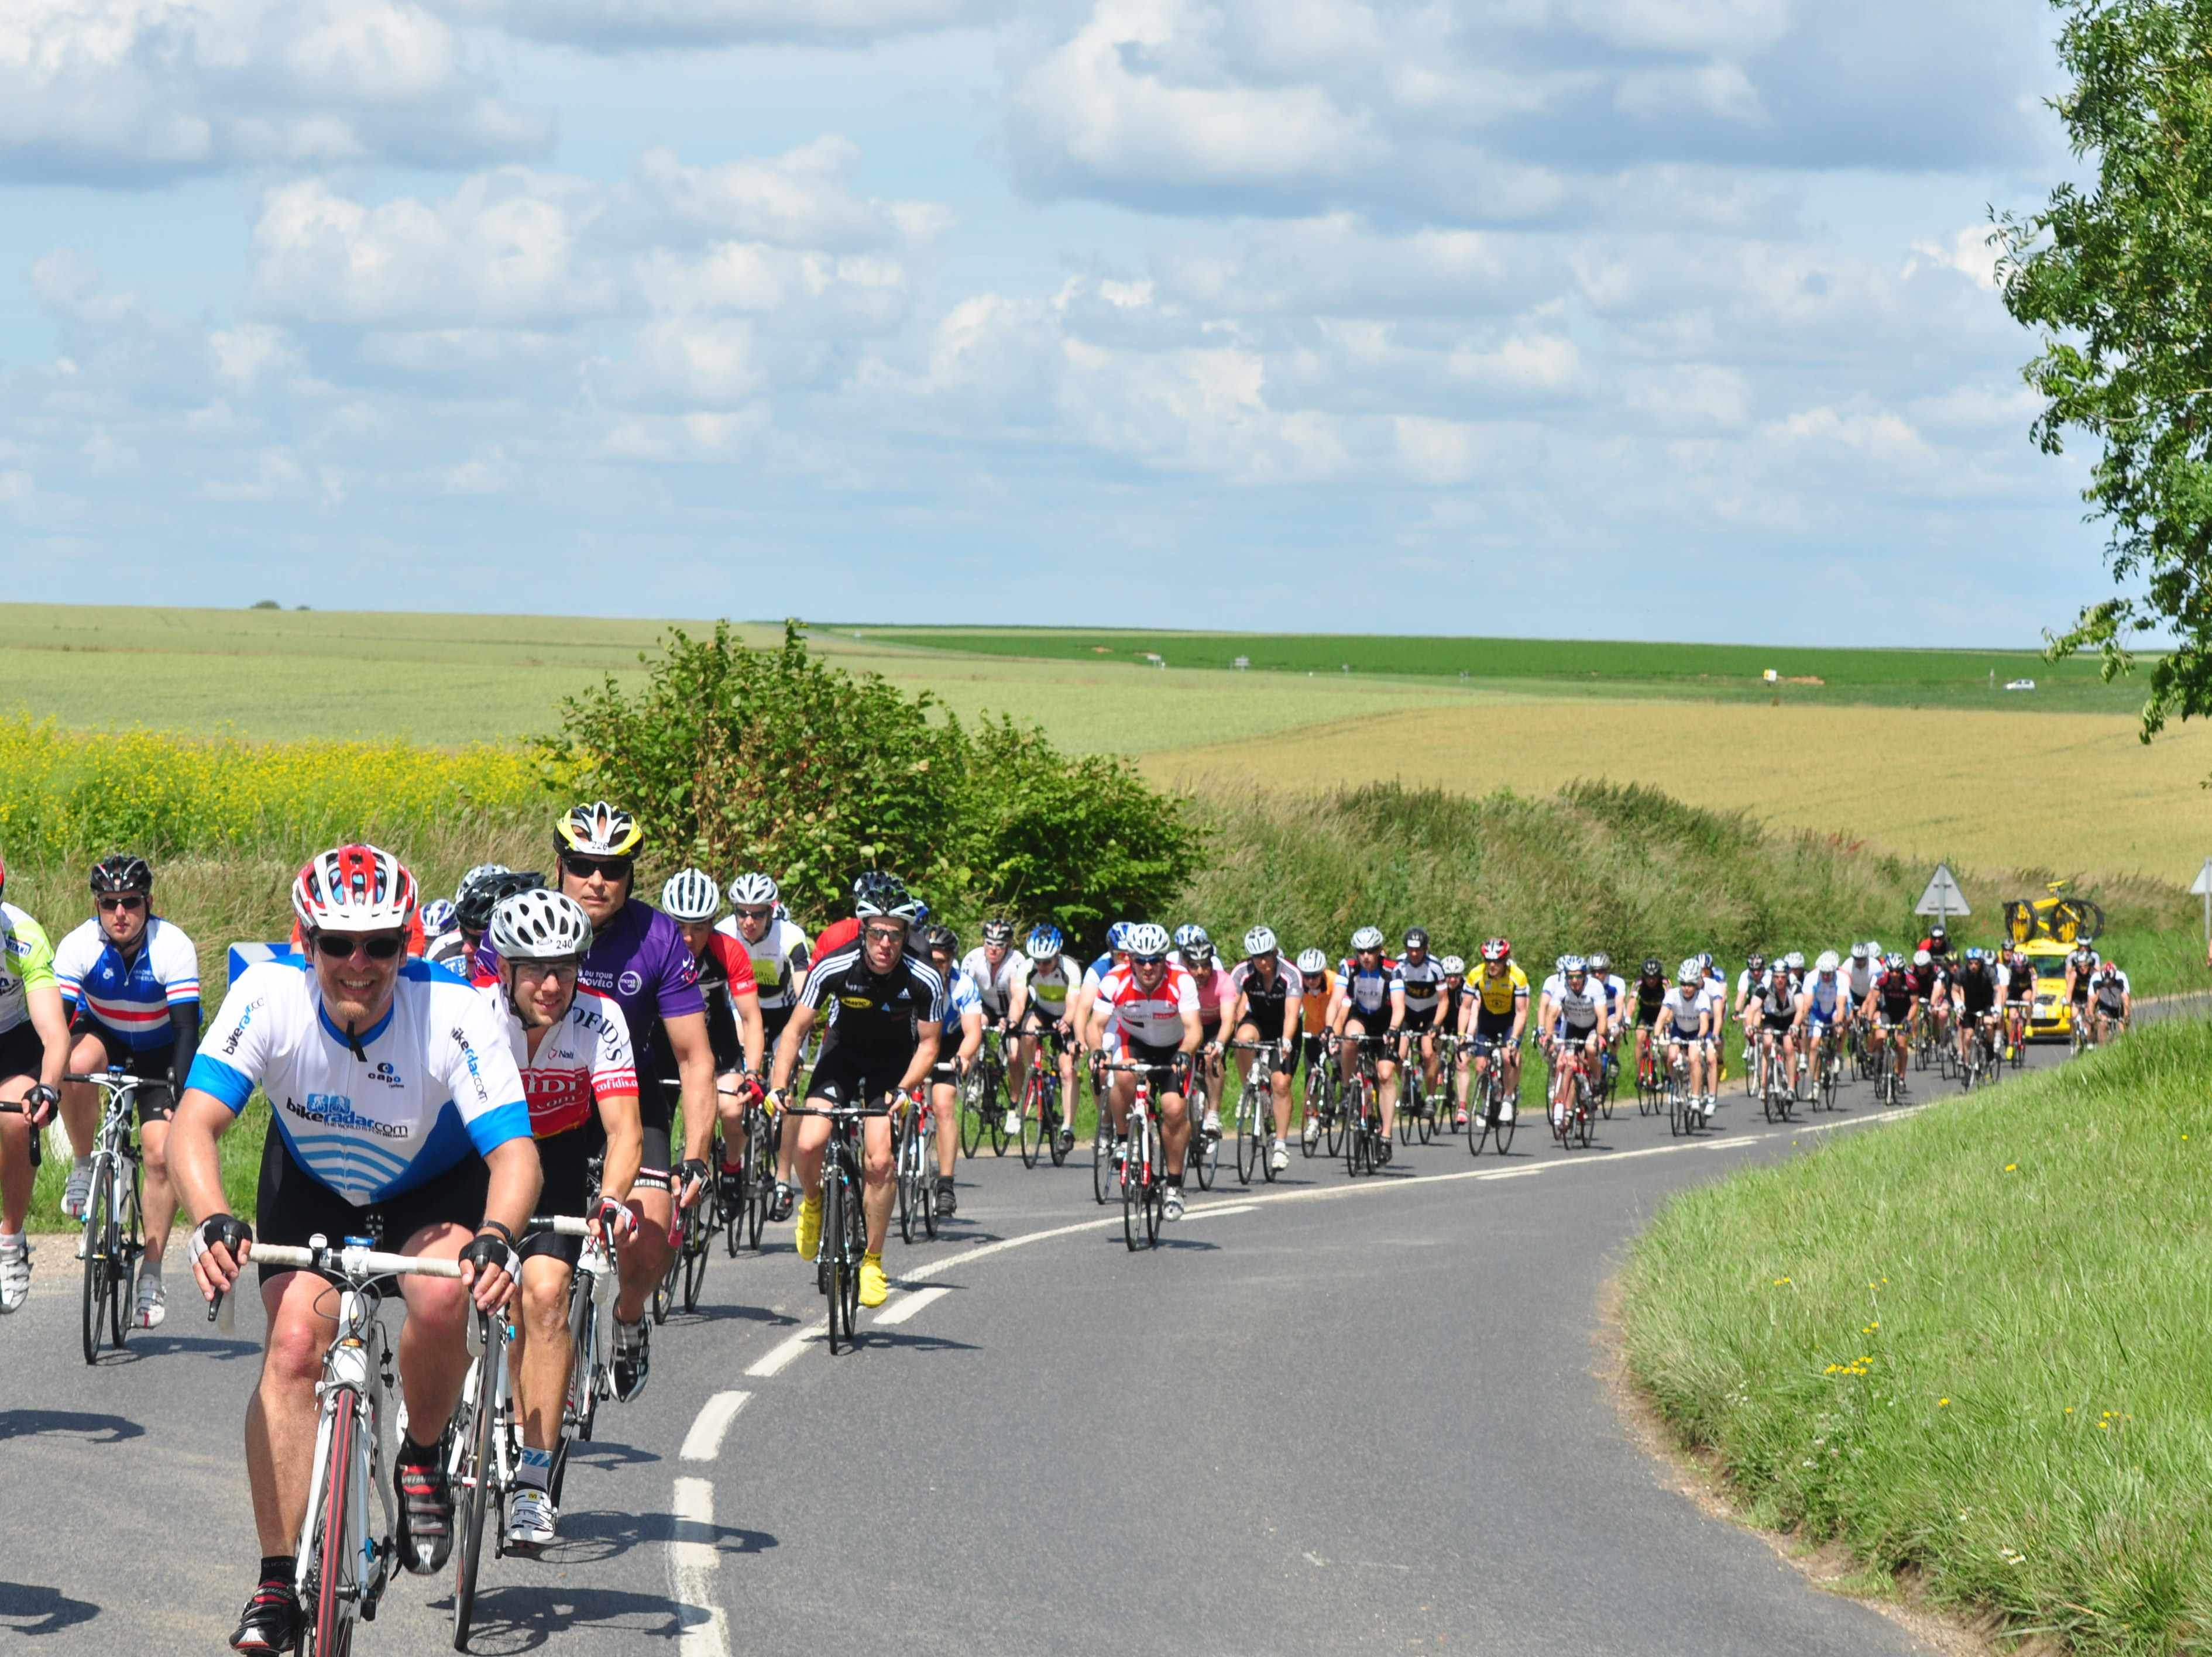 The 2011 London-Paris snakes its way through Northern France